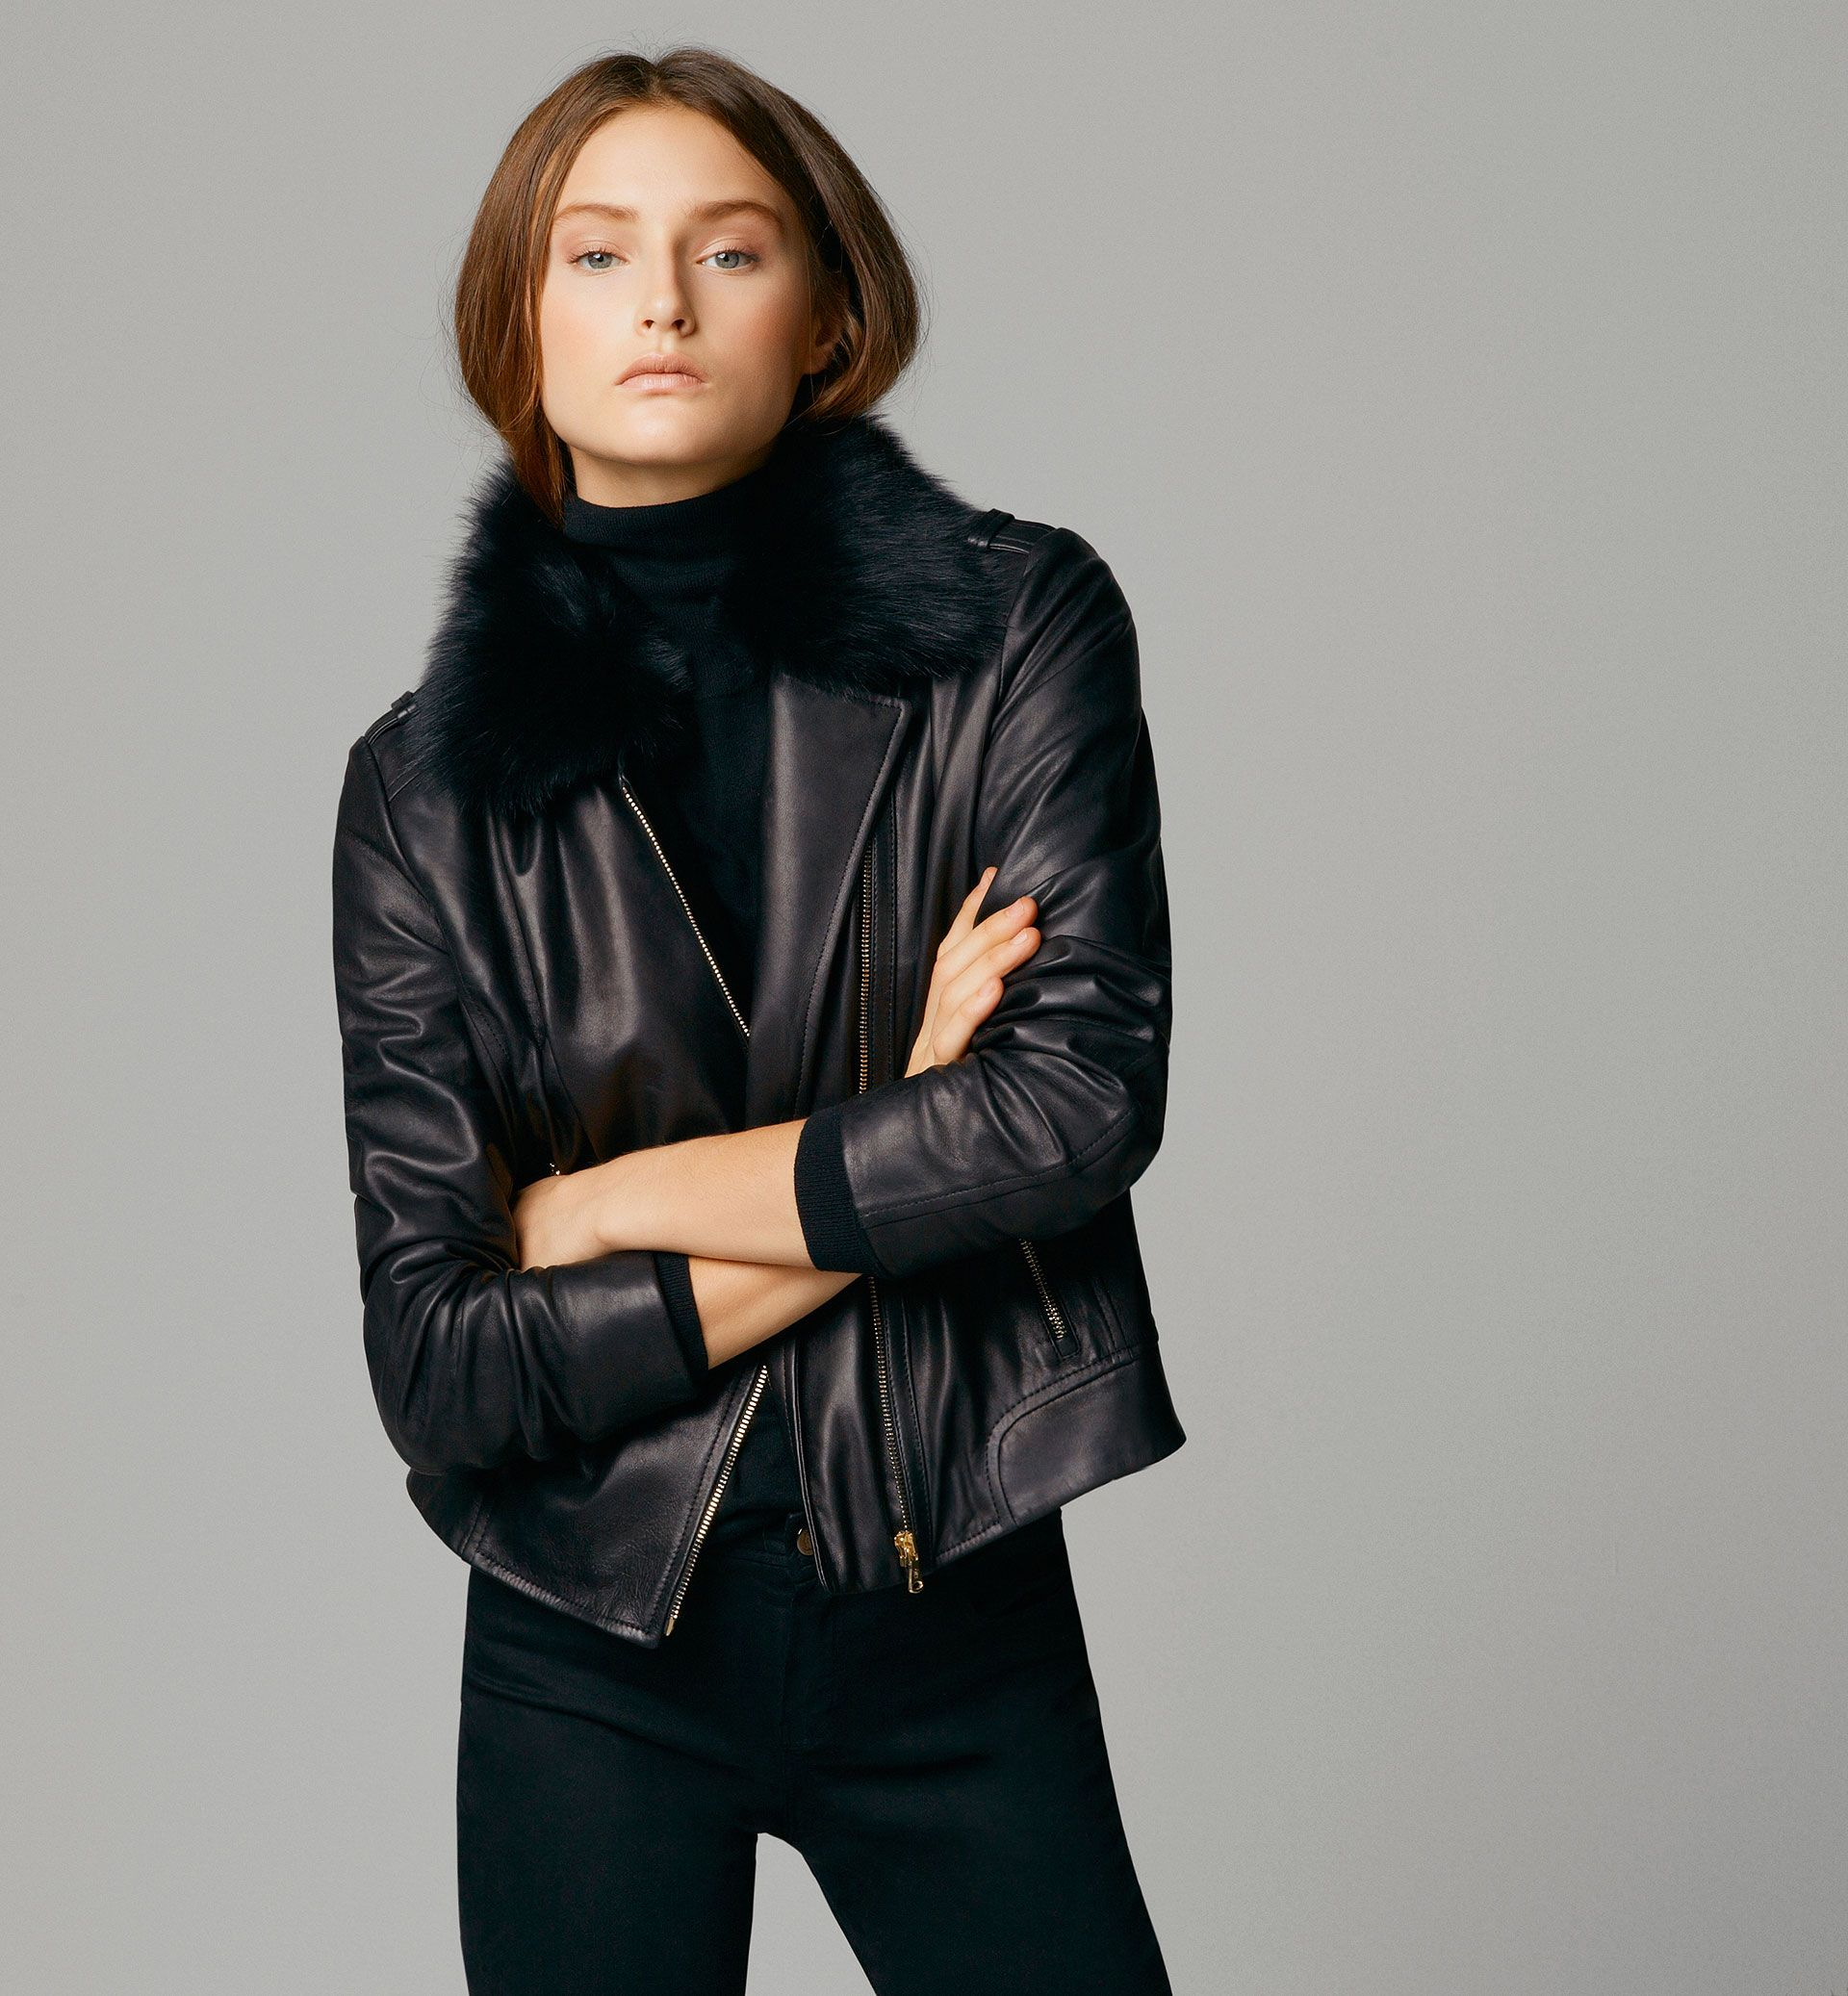 Black Leather Jacket With Fur Lined Collar Leather Jacket Leather Jacket Style Leather Jackets Women [ 2074 x 1920 Pixel ]